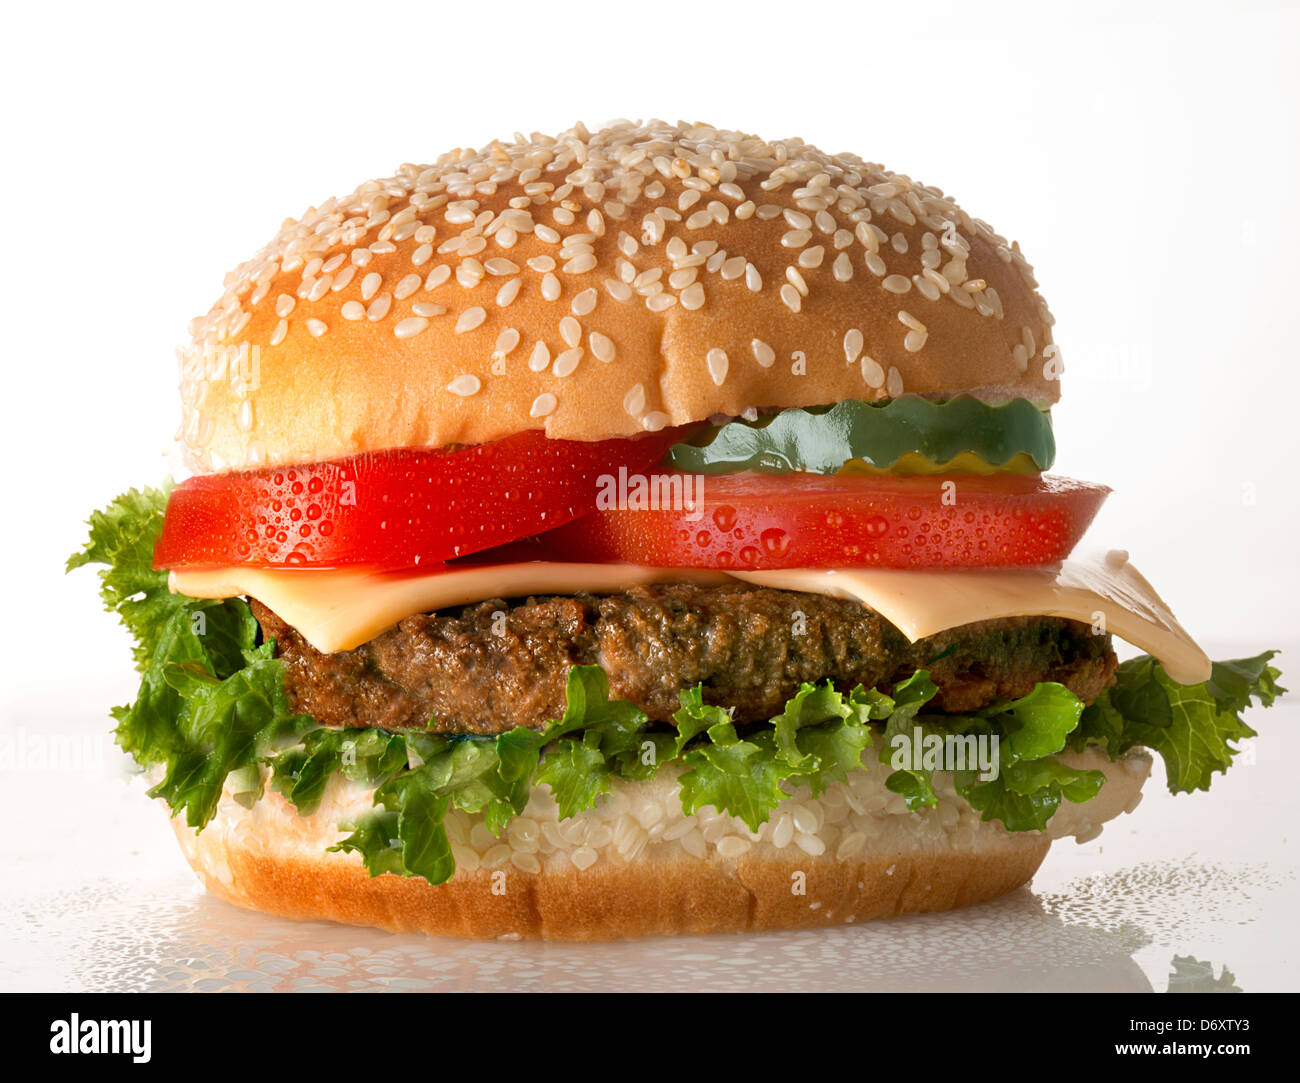 Cheeseburger avec tomato Photo Stock